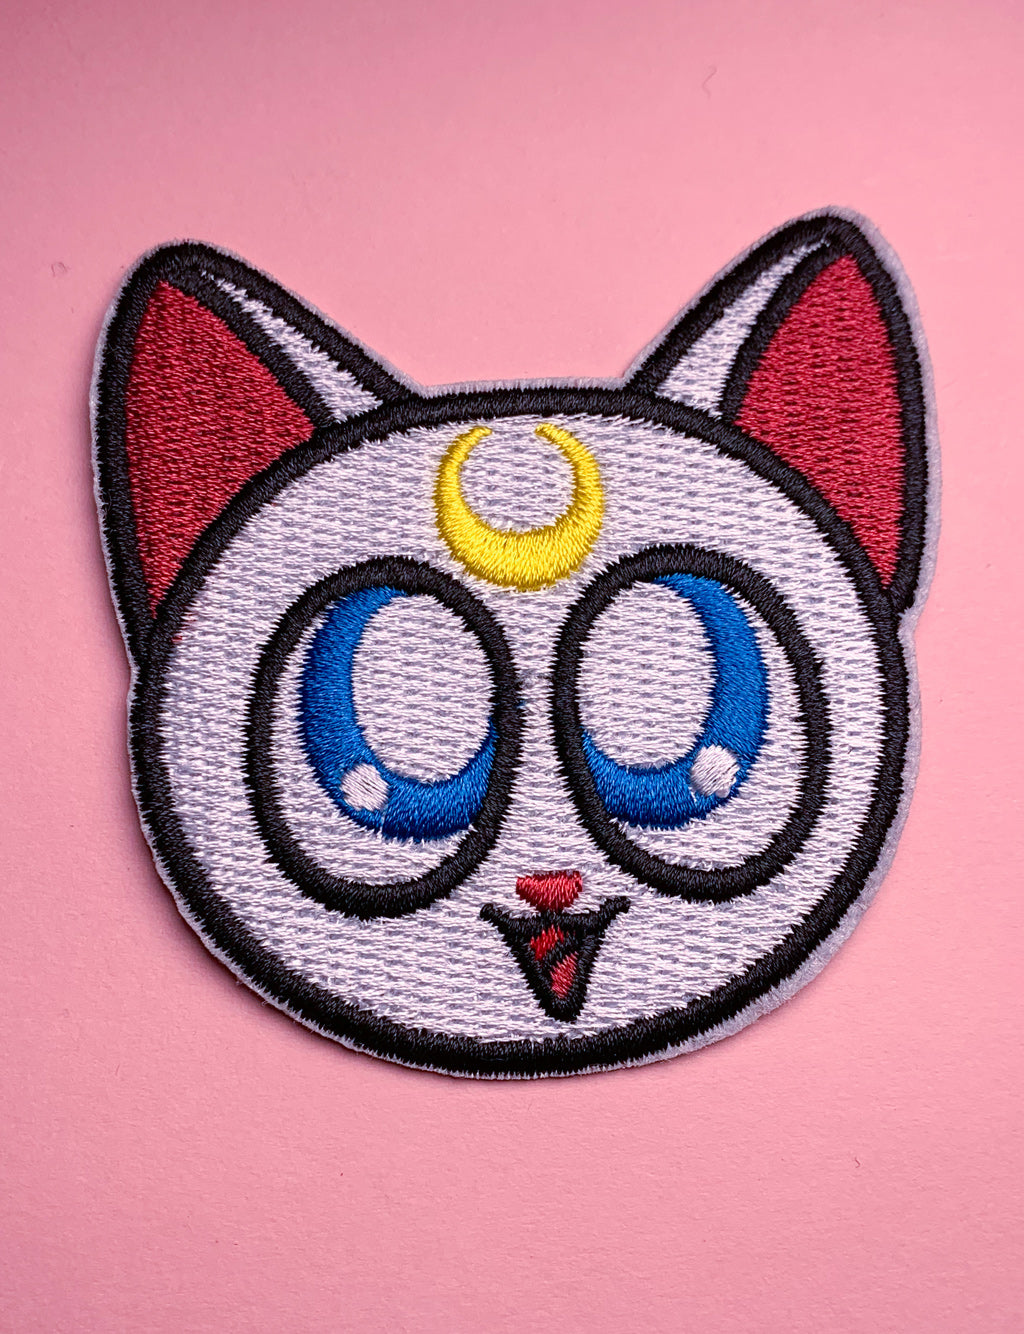 ARTEMIS SAILOR MOON PATCH